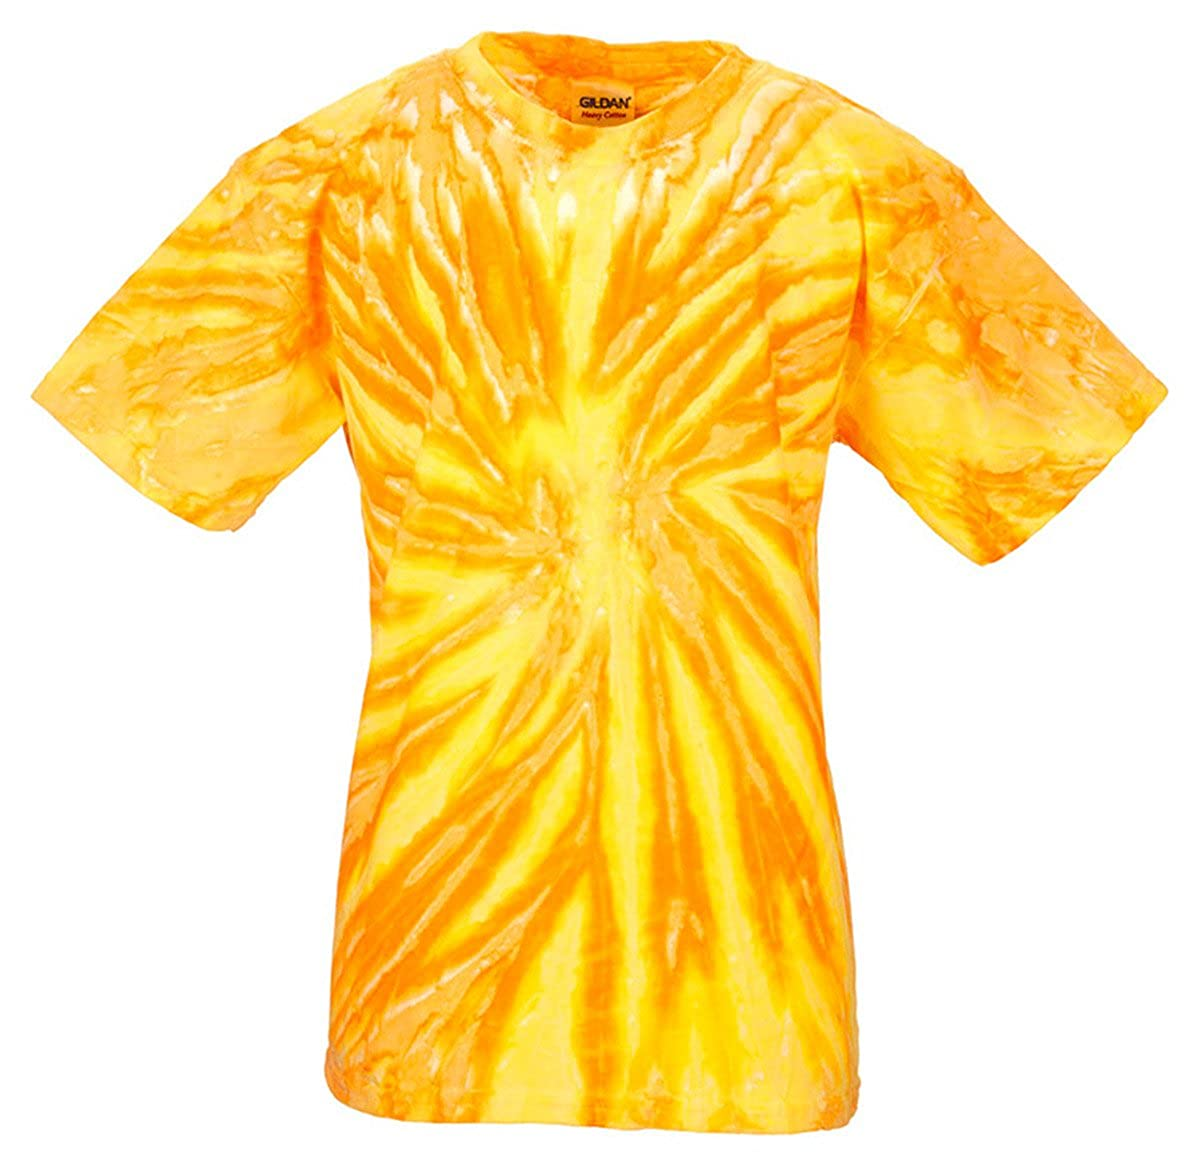 Tie Dye H1100B Youth Twist Tie-Dyed Tee Pineapple44; Large